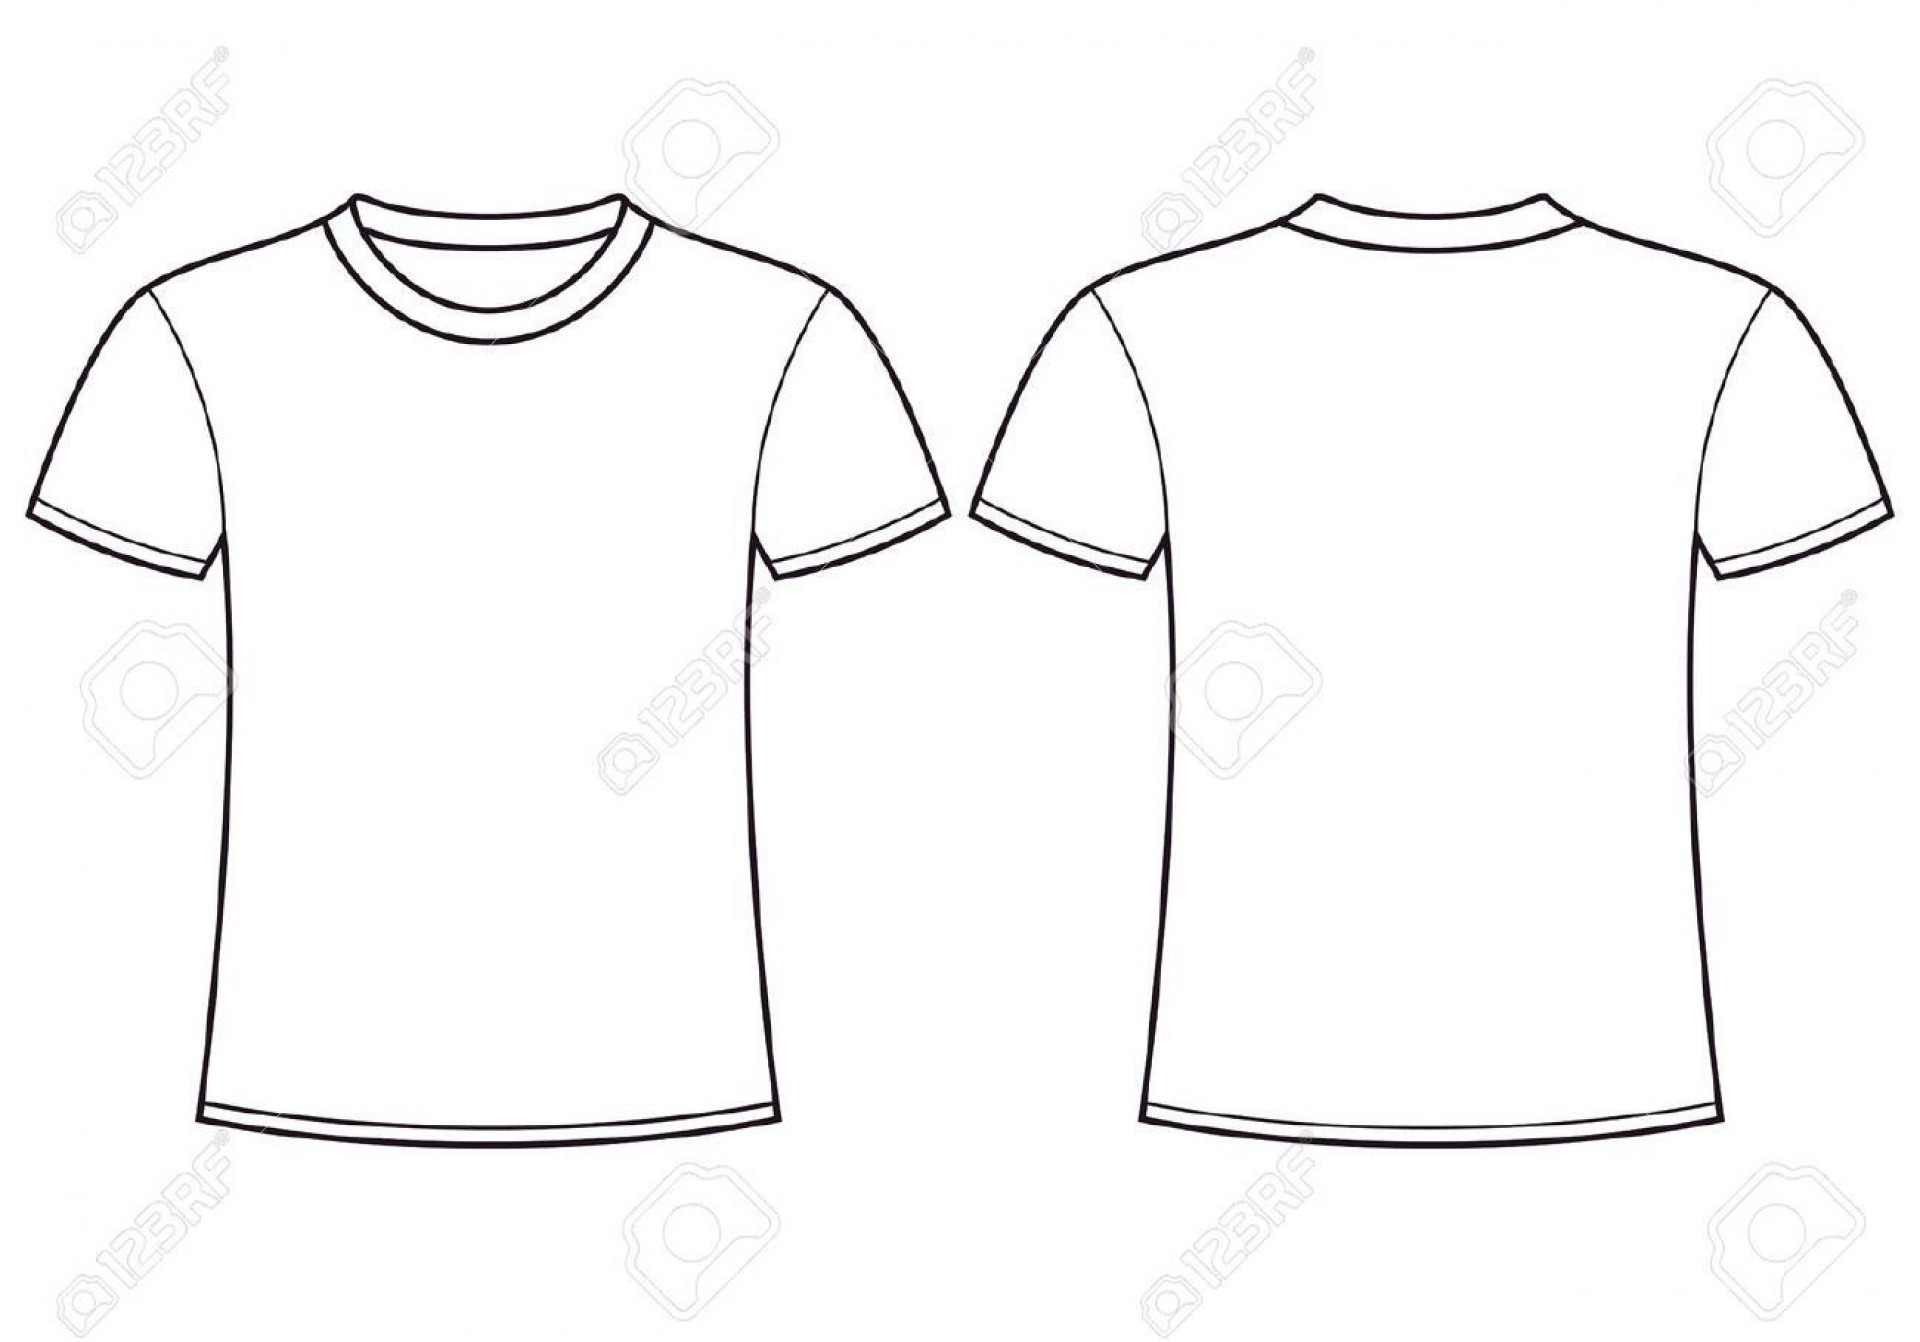 004 Simple Plain T Shirt Template Design  Blank Front And Back1920